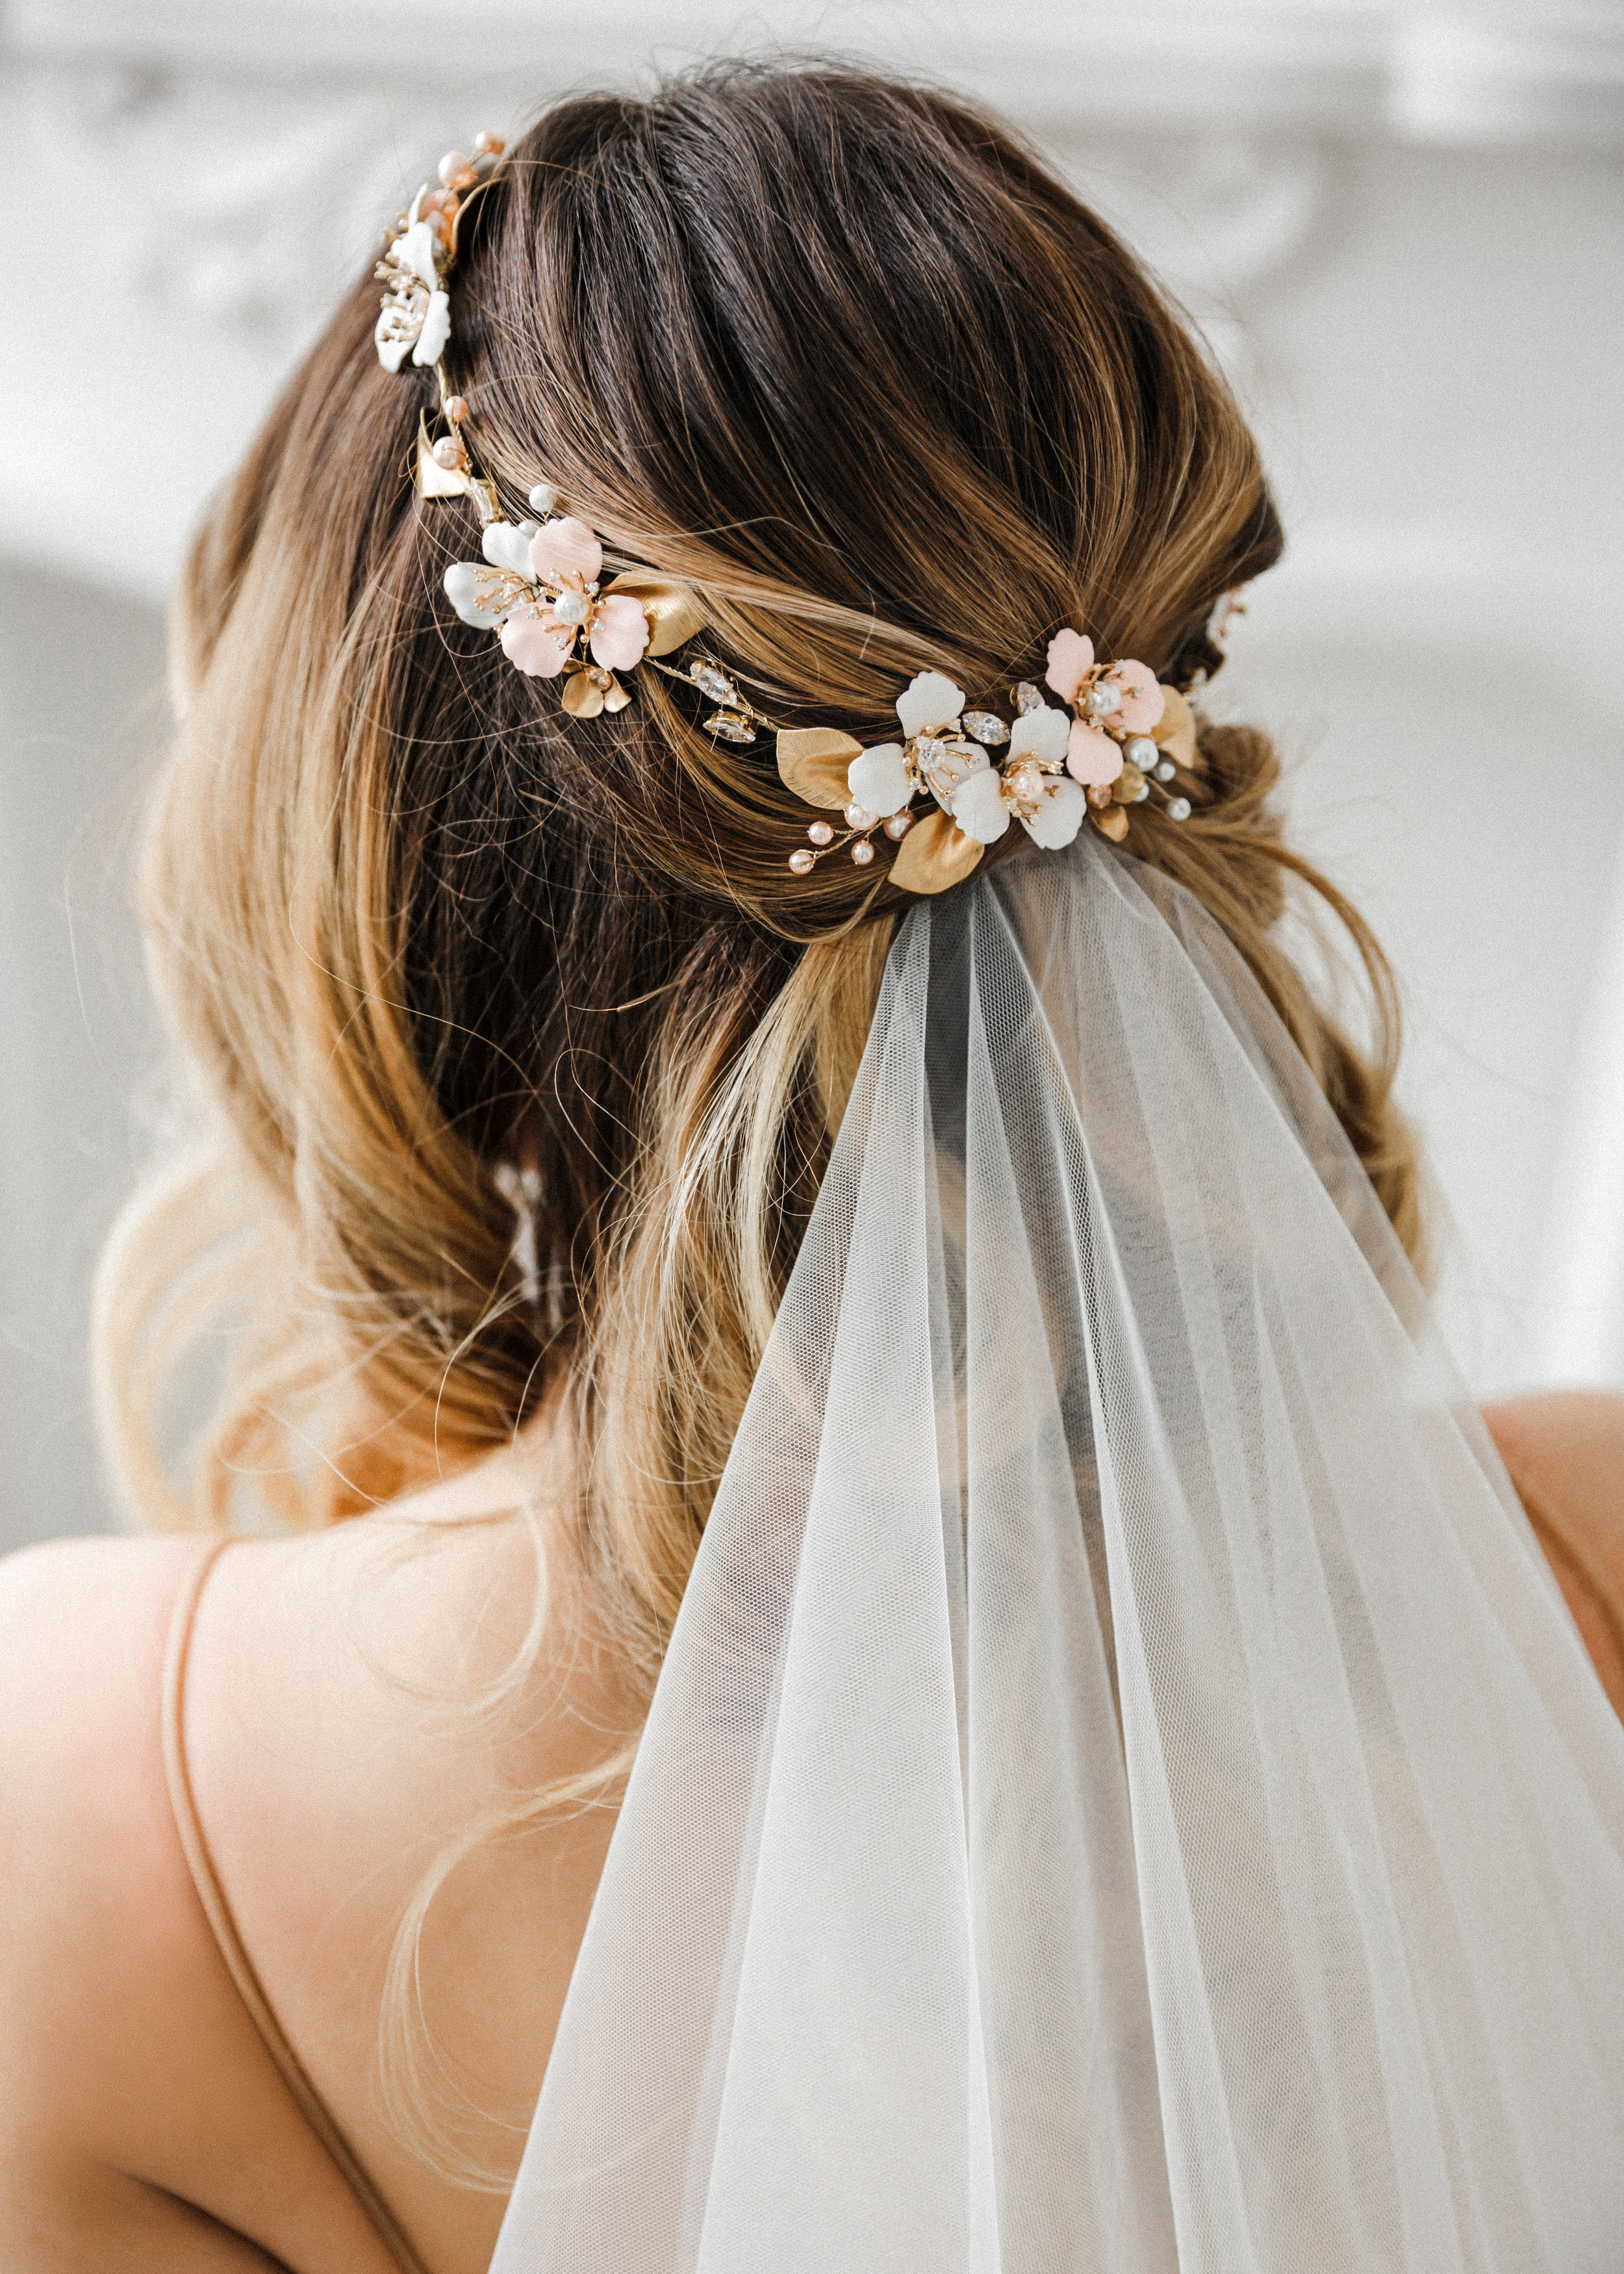 Find your perfect Wedding Headpiece - Handmade in SwitzerlandUnique DesignPossibility to Rush OrdersFree Shipping WorldwideCustomisable OrdersFast response on your questions